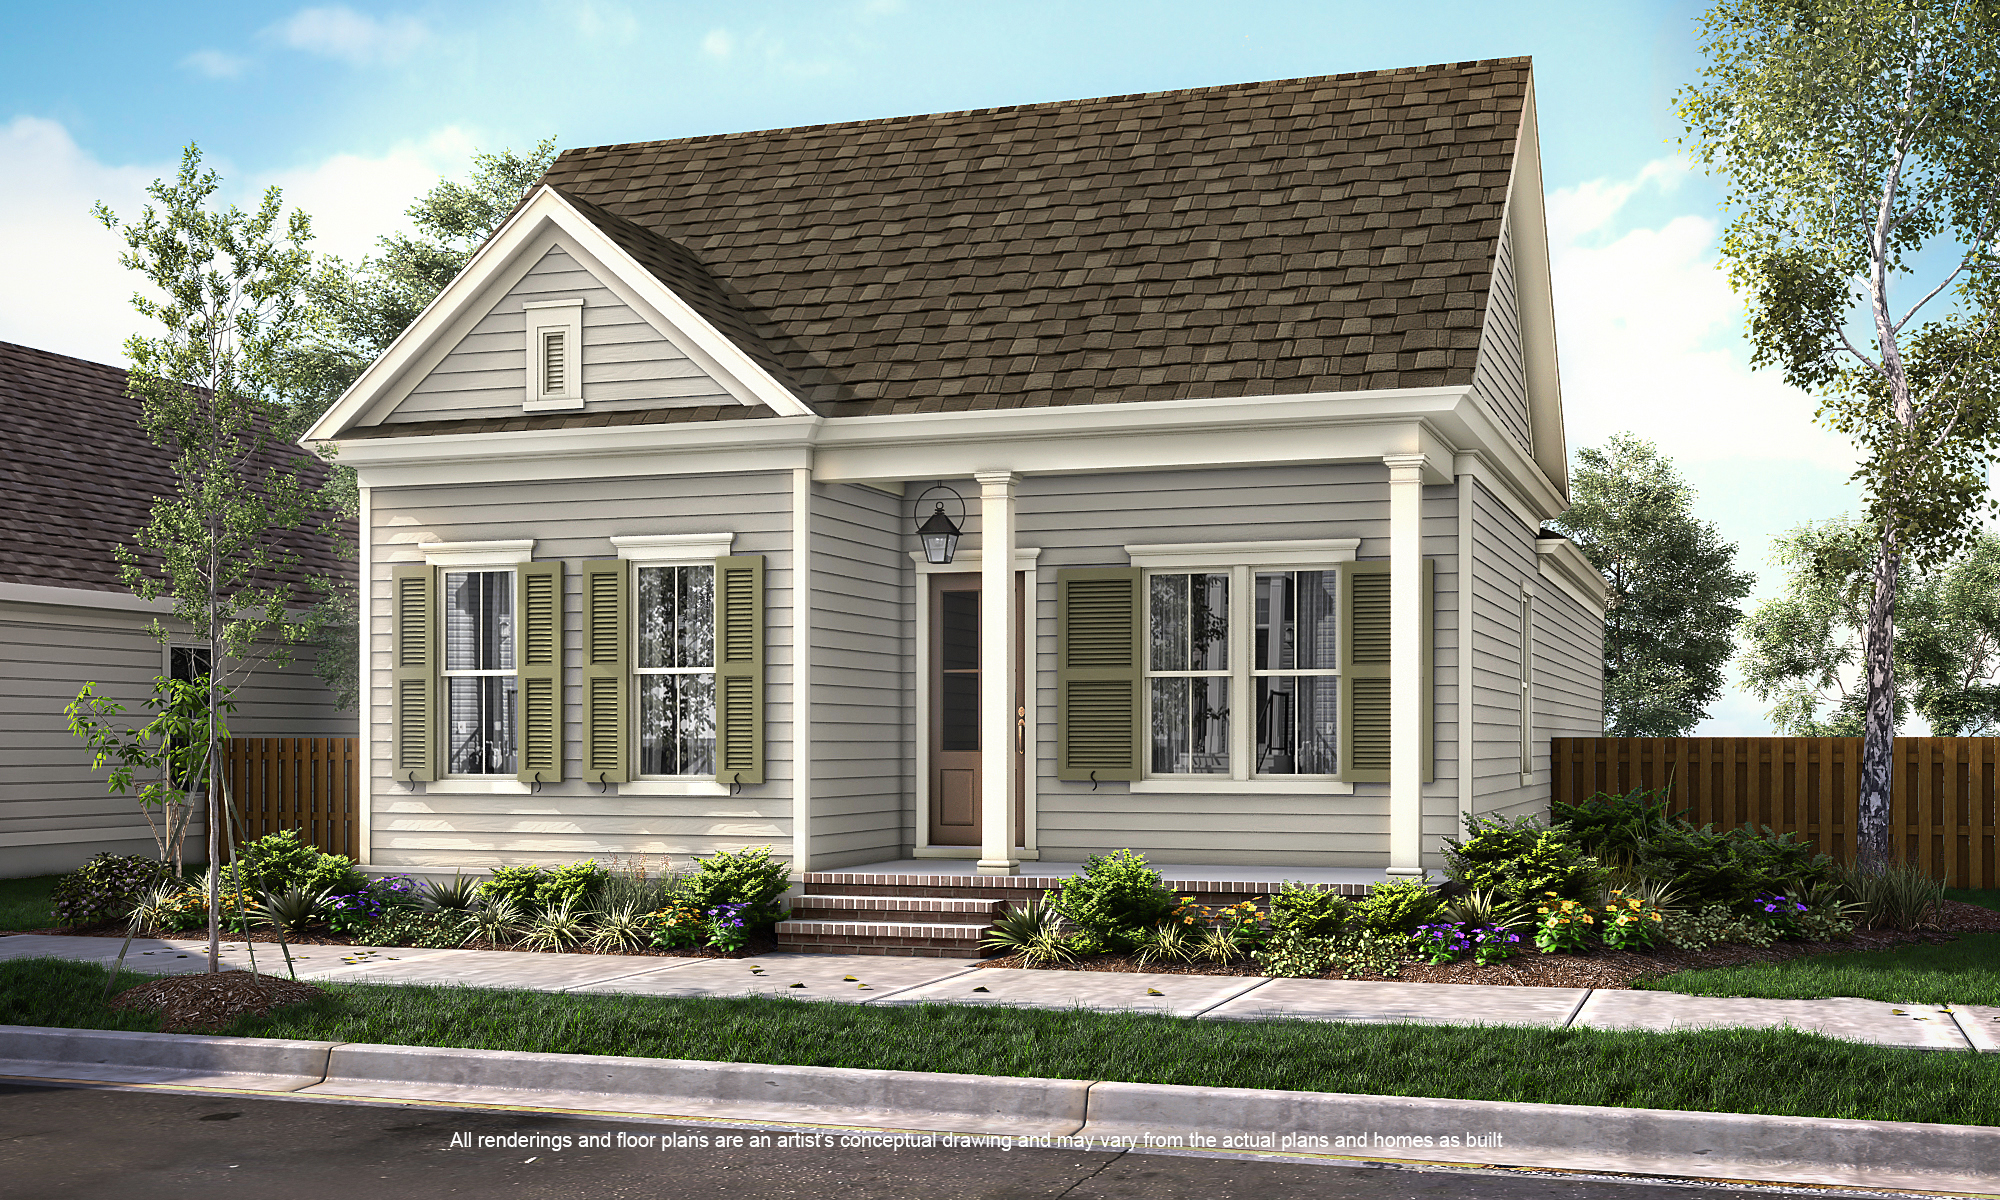 Nottoway - 1,450 SF — Starting from $269,000